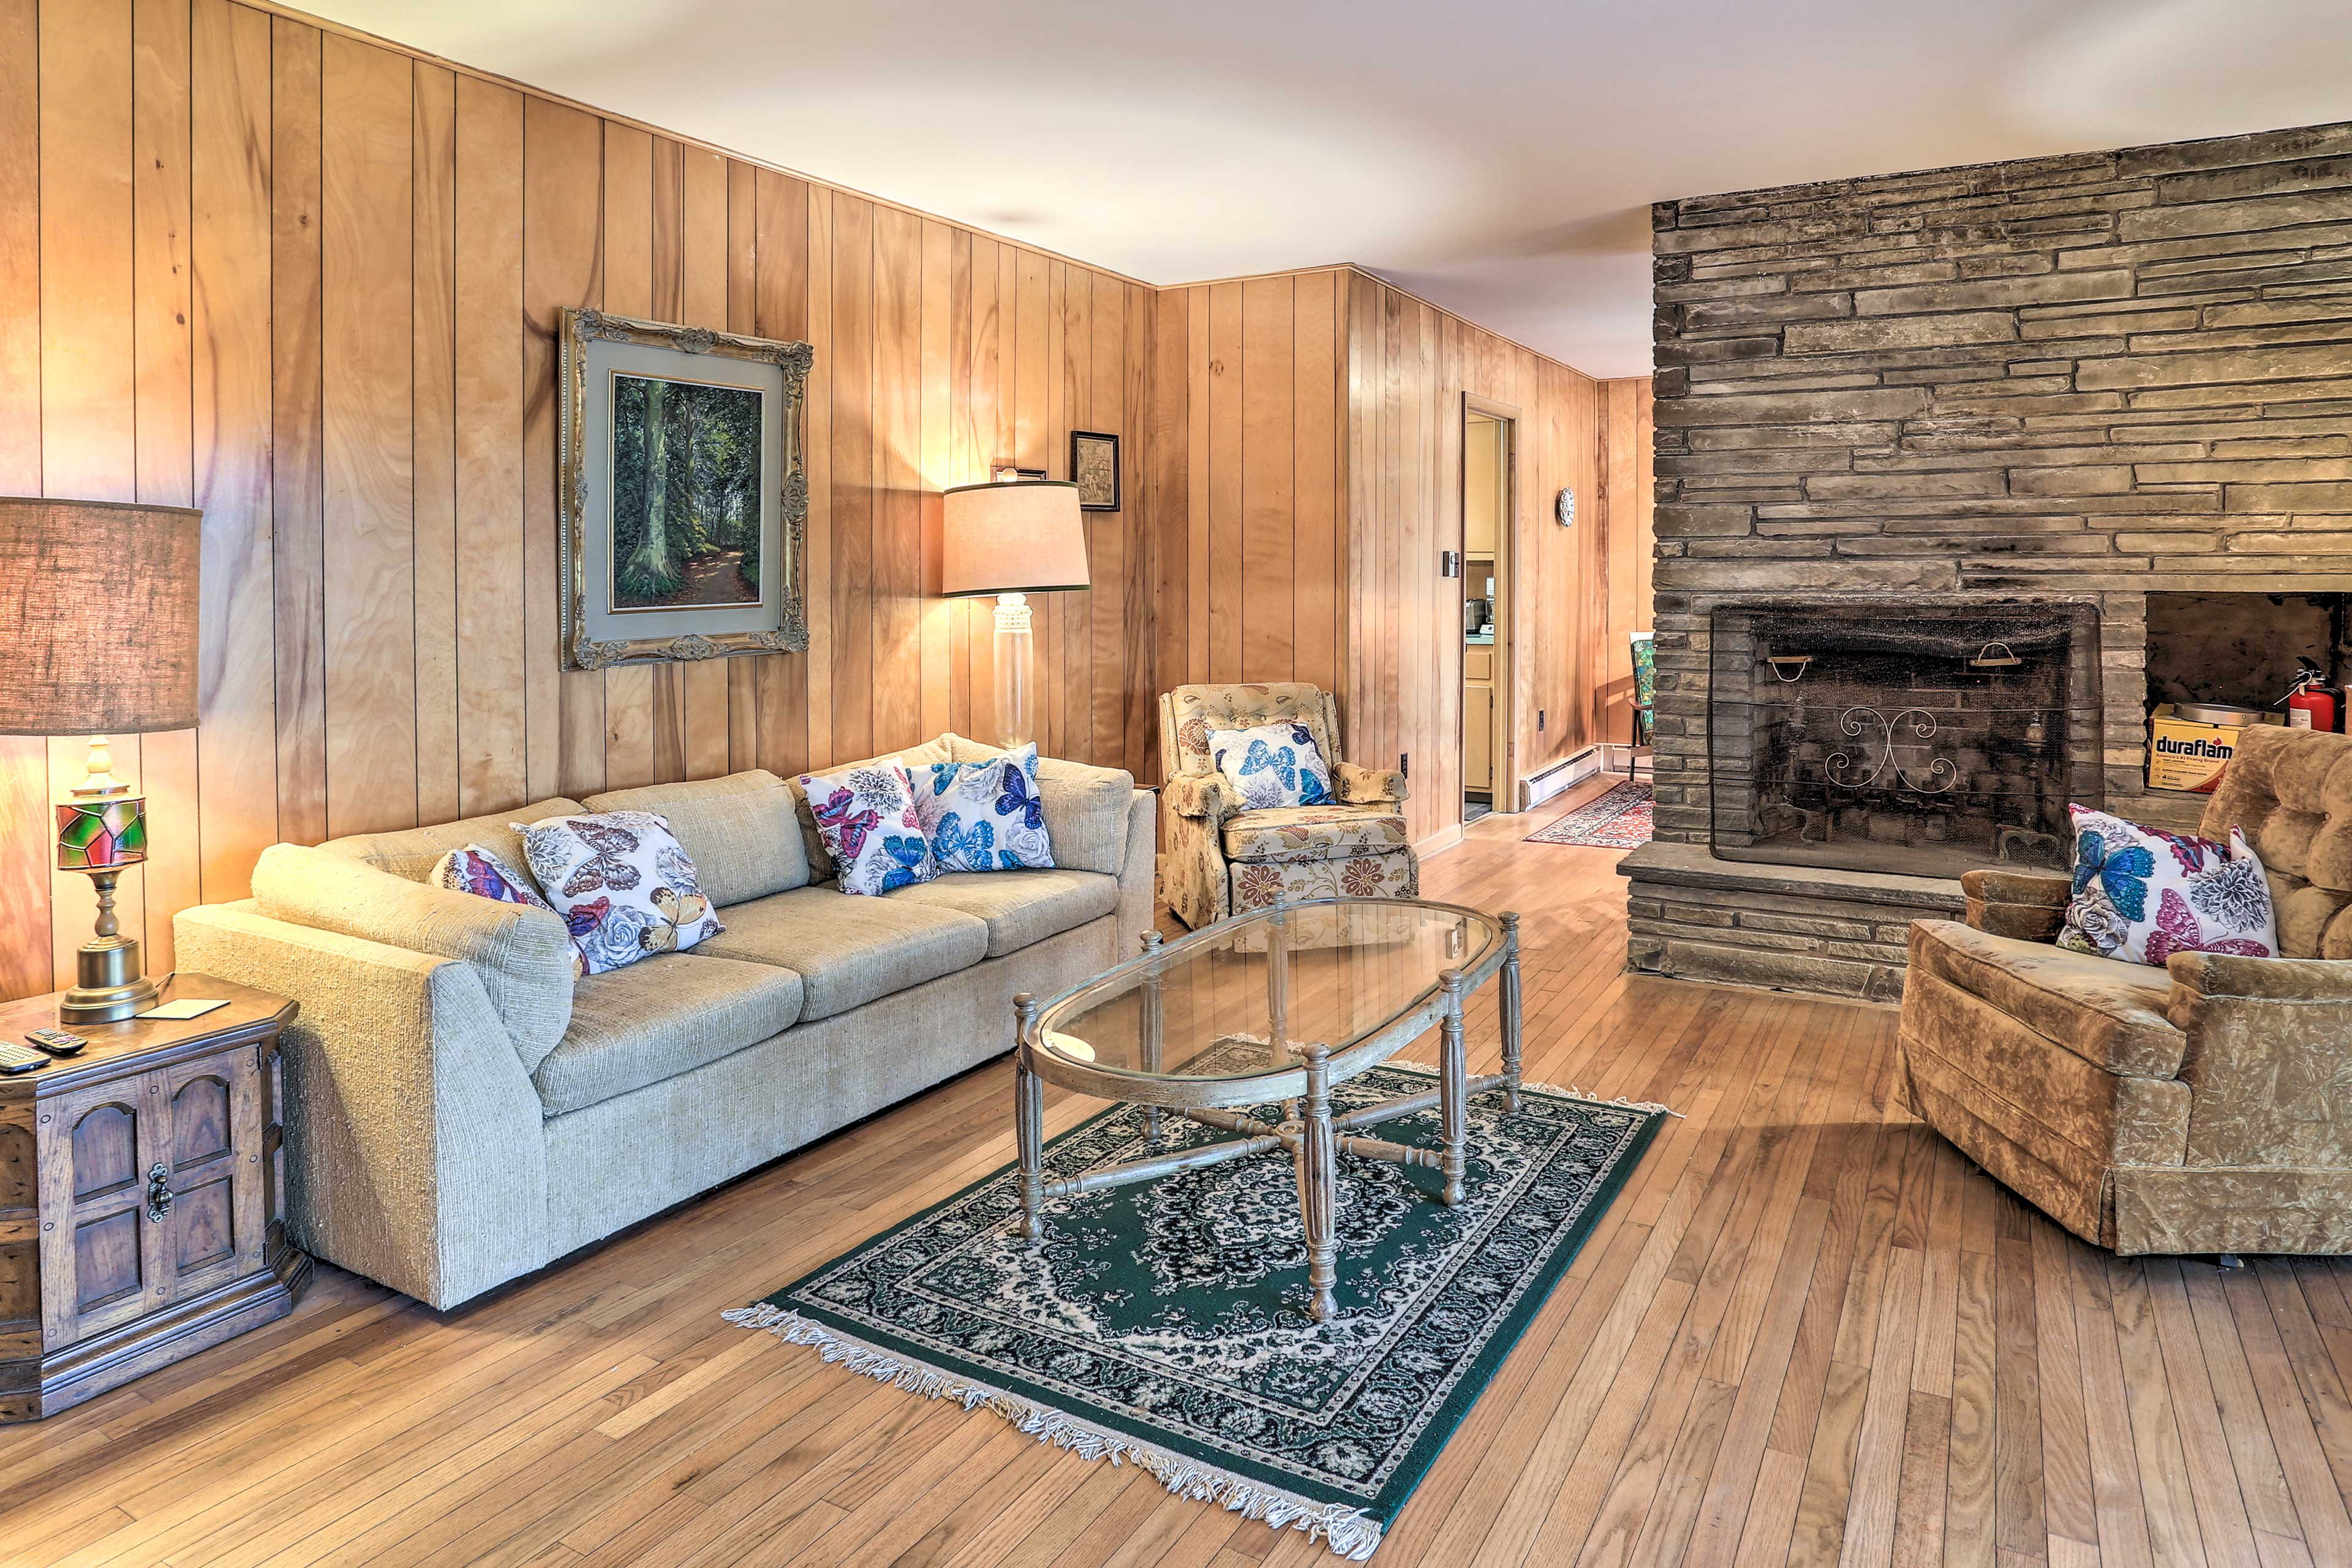 Unwind inside this vacation rental in between trips to the nearby attractions!